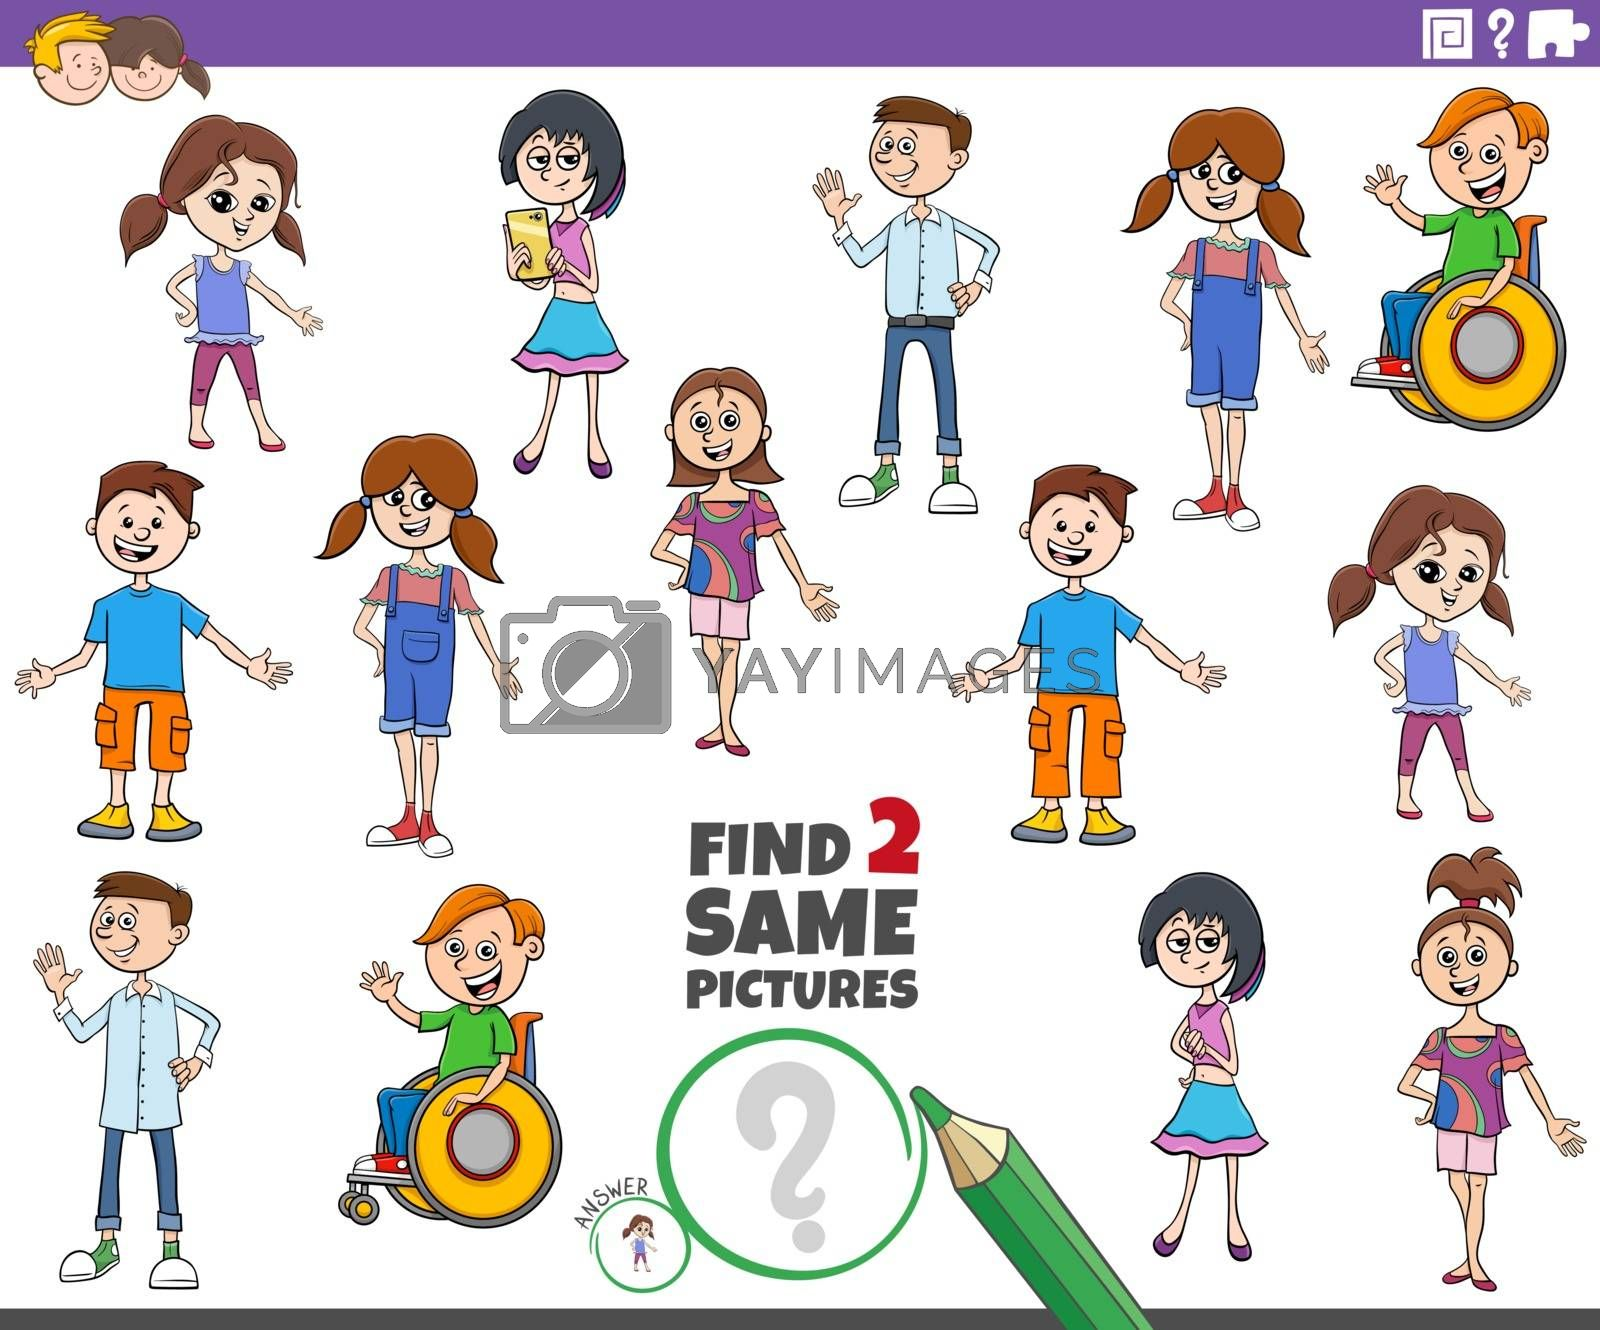 Cartoon Illustration of Finding Two Same Pictures Educational Task with Children and Teen Characters